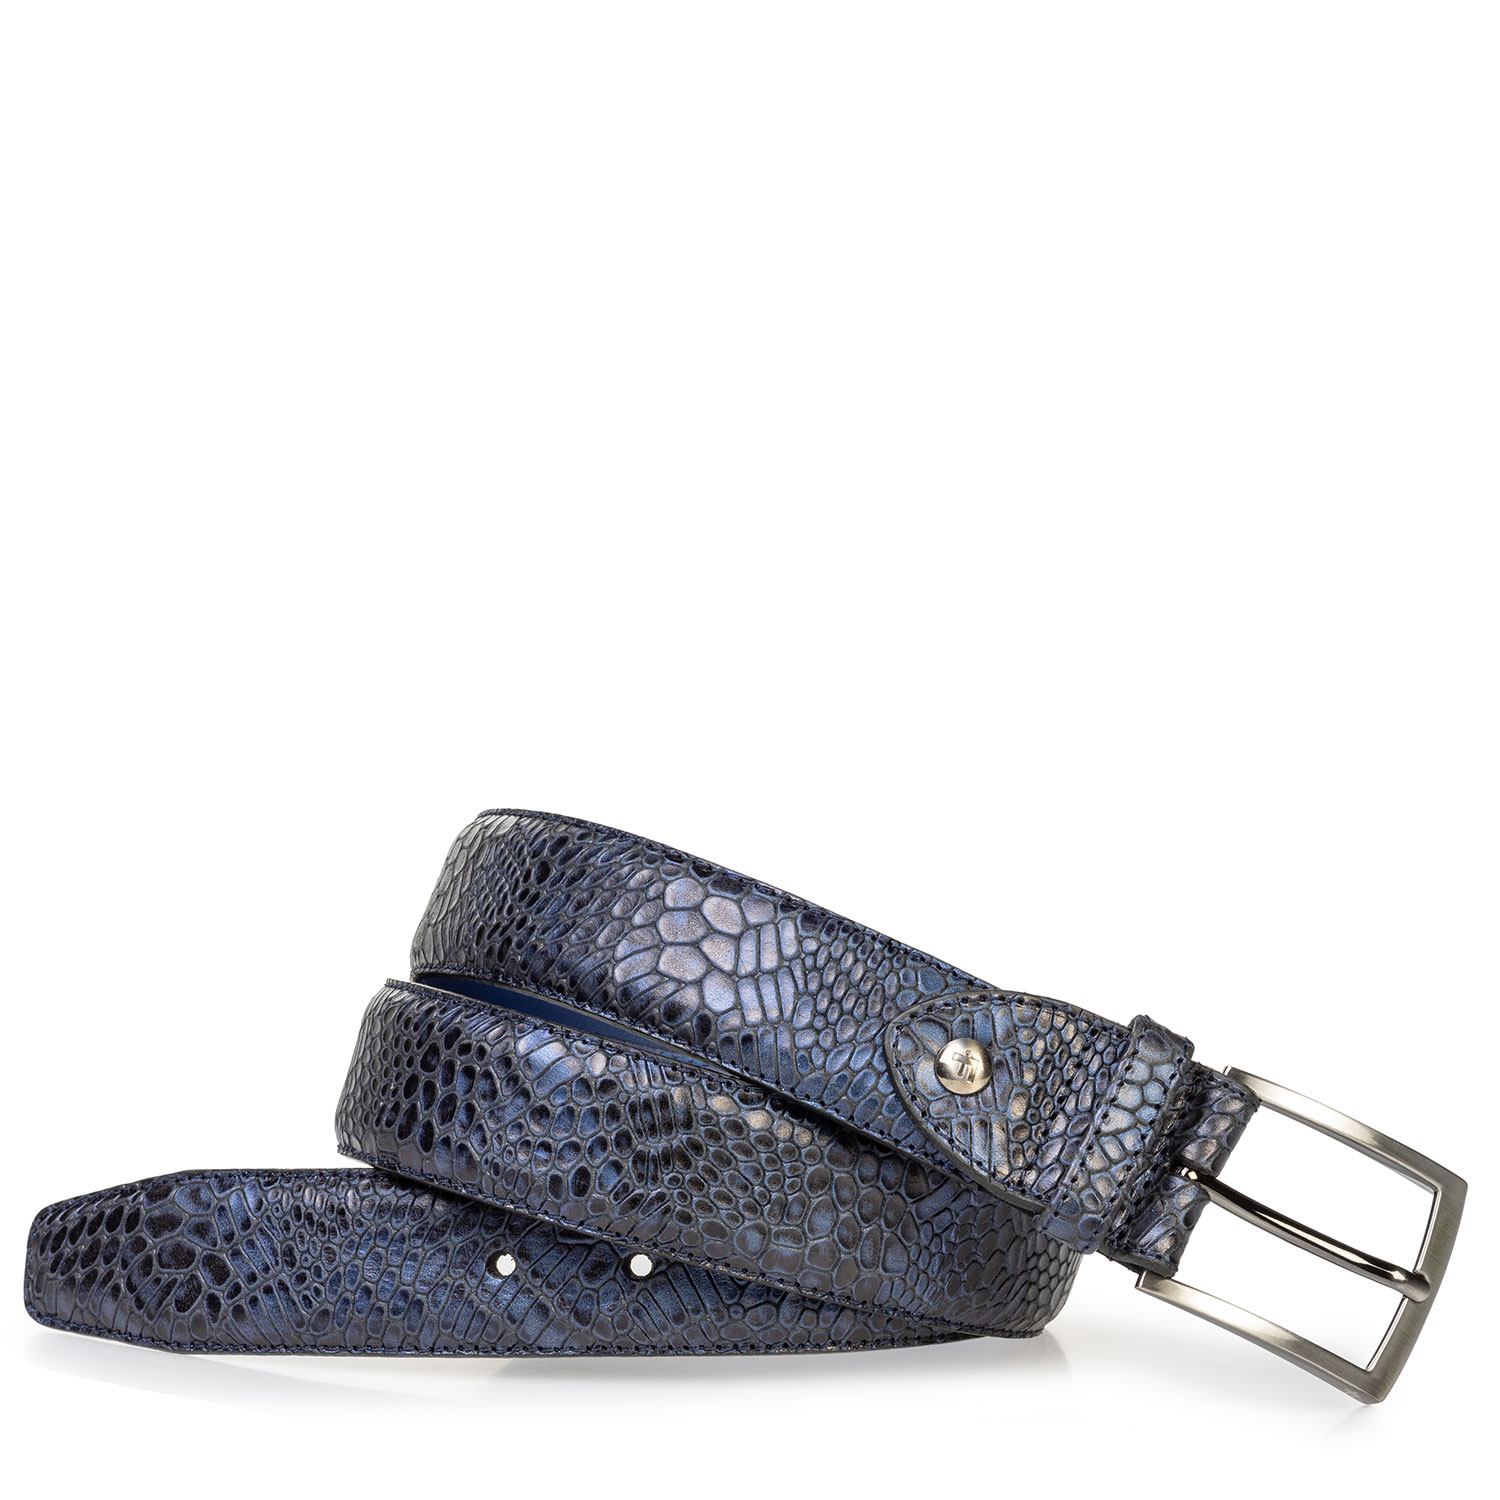 75203/17 - Leather belt metallic blue